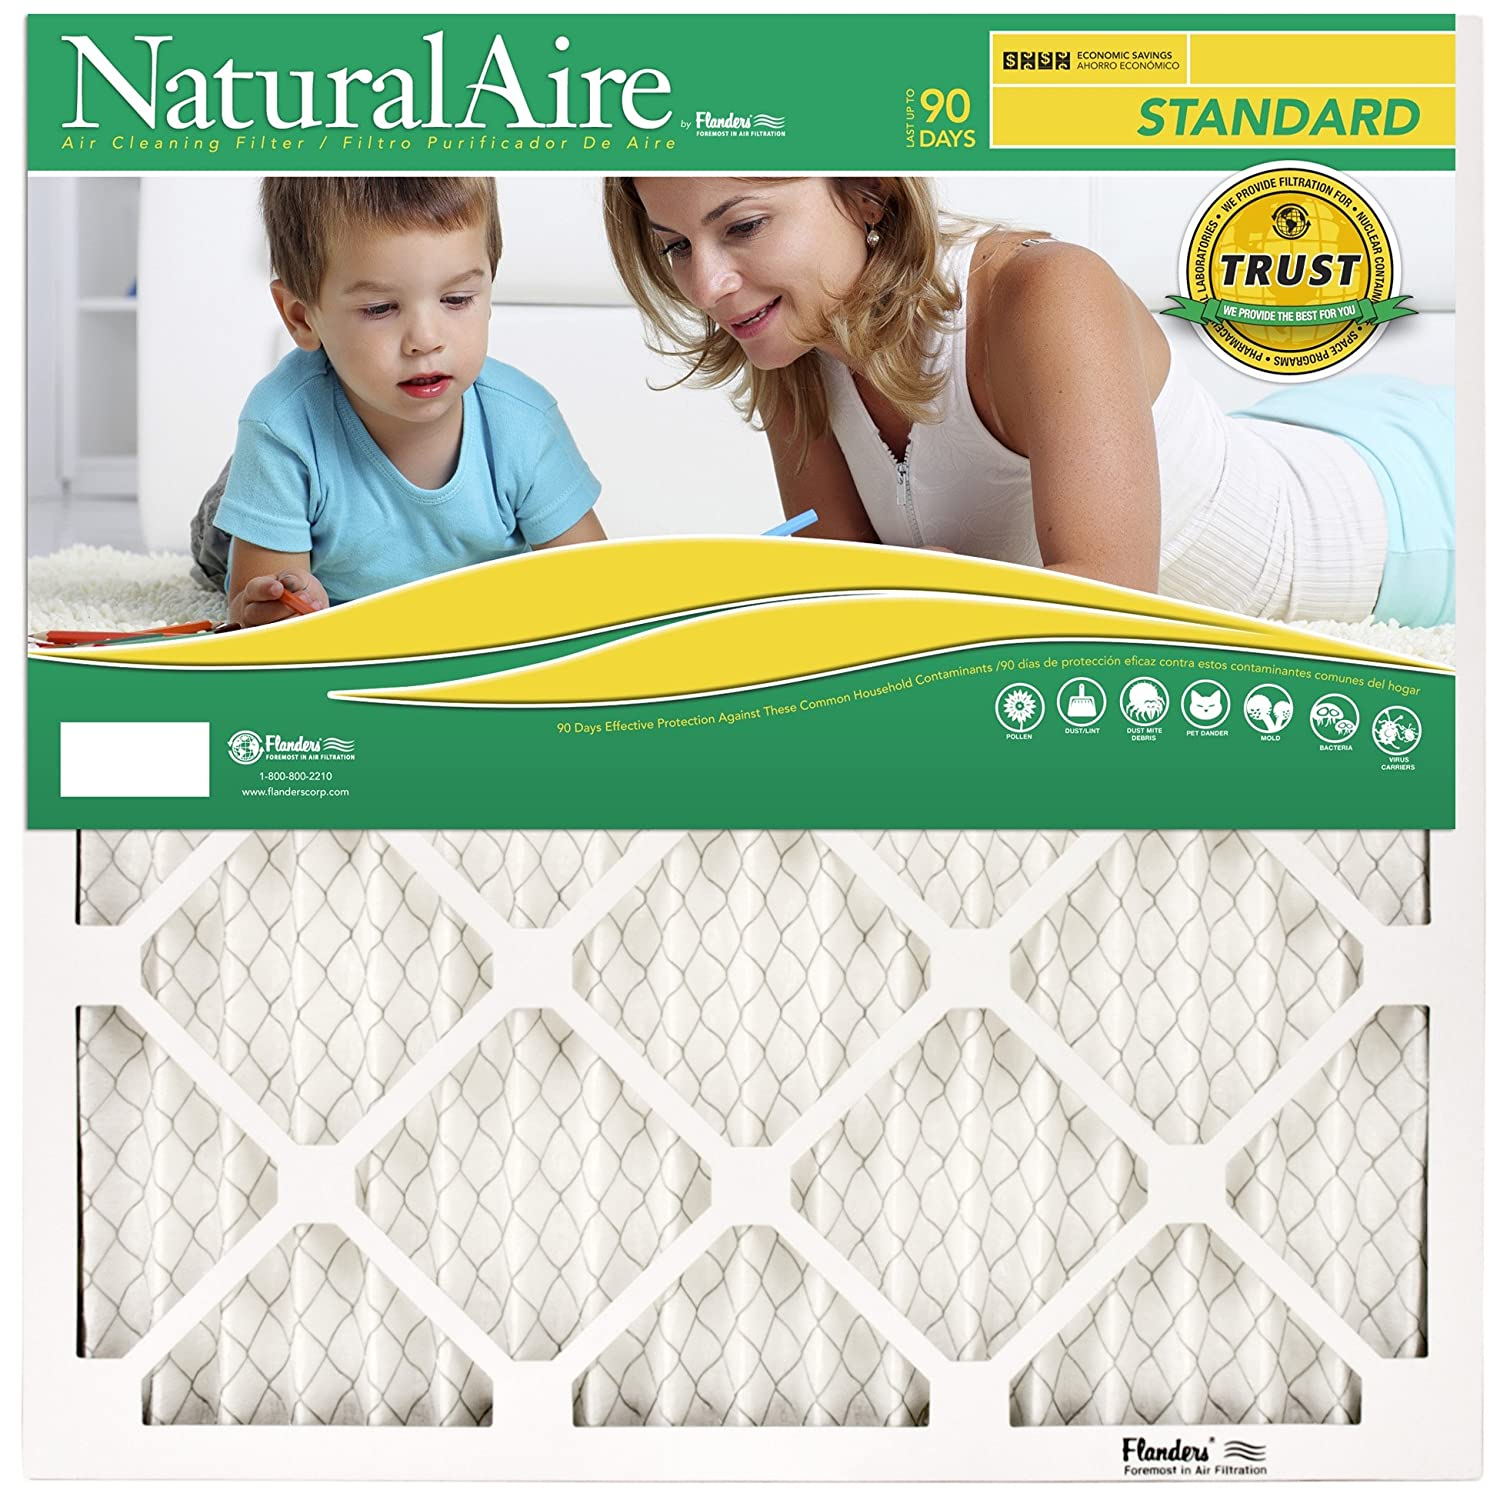 NaturalAire Standard Air Filter, MERV 8, 12 x 36, 1-inch, 12-Pack